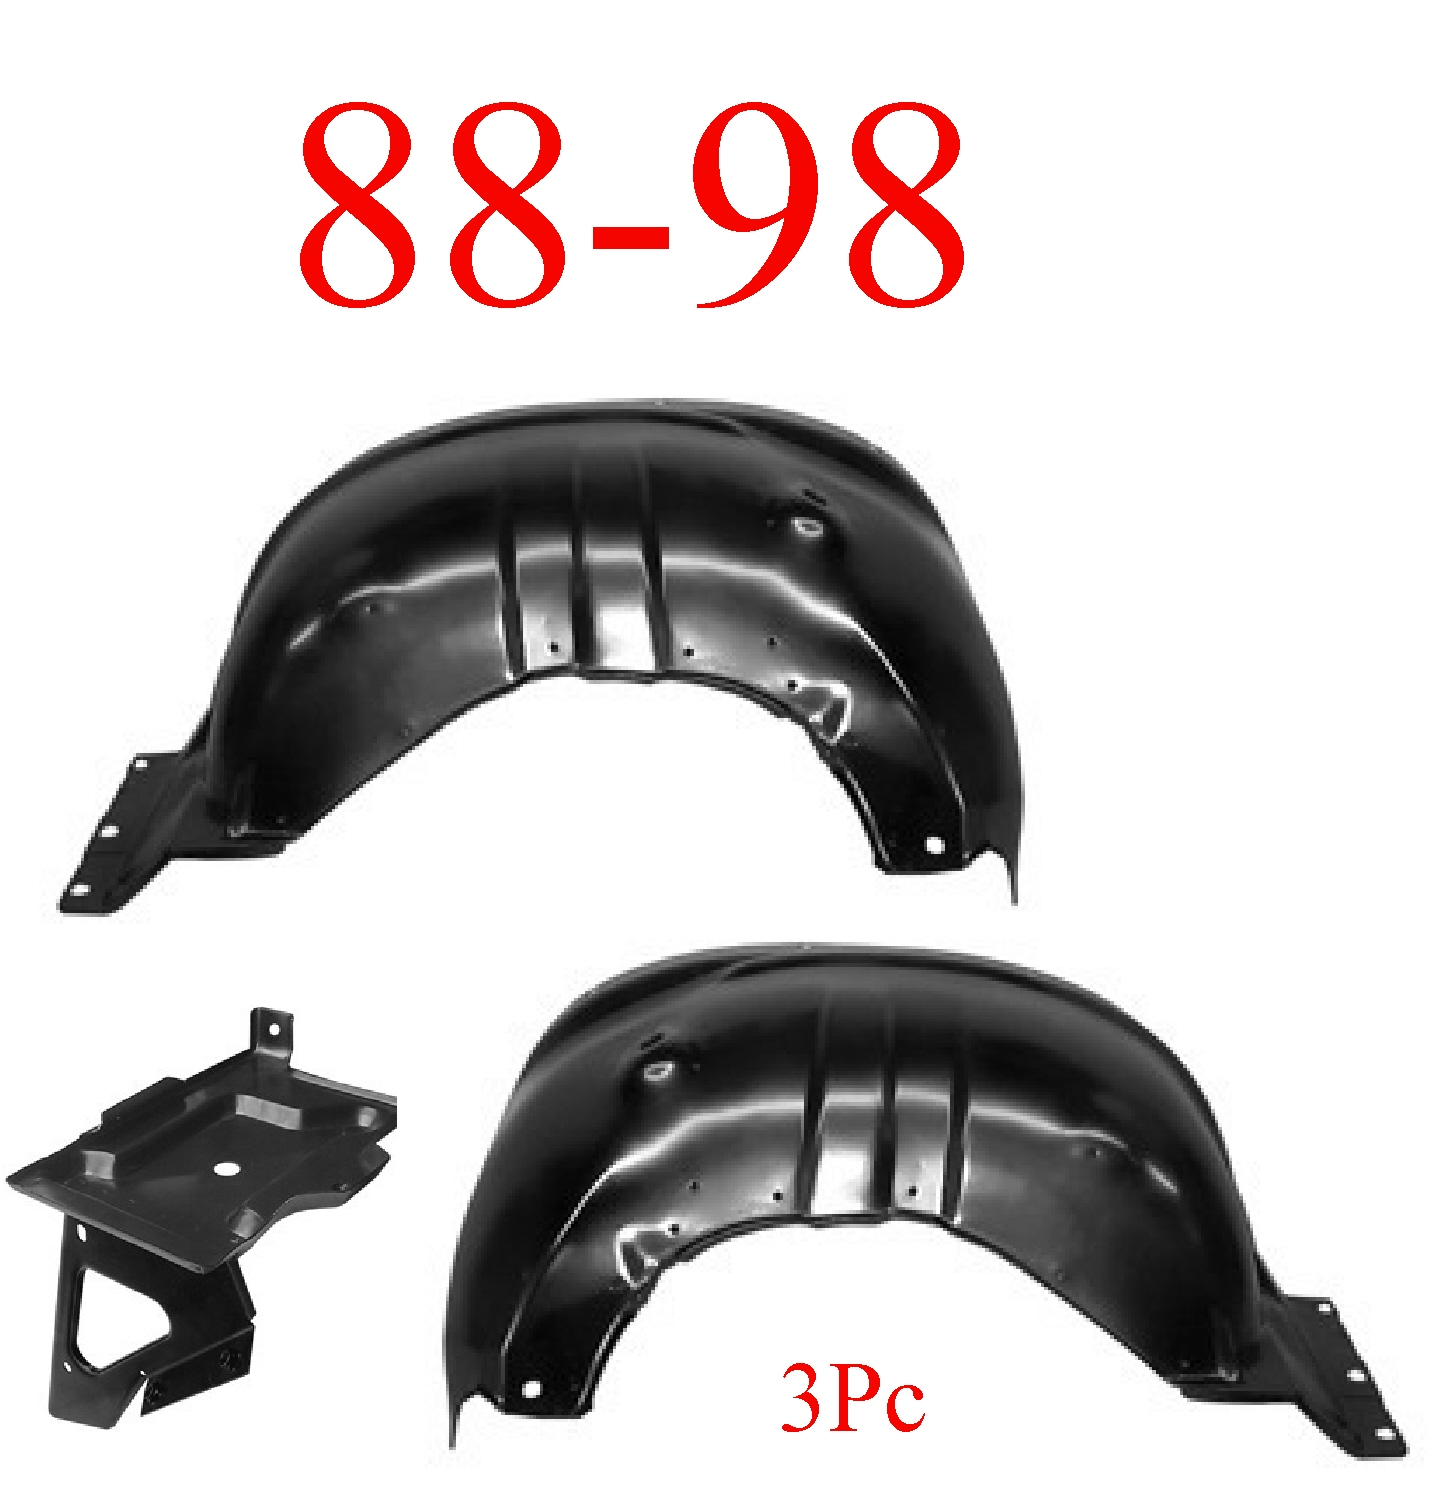 88-98 Chevy 3Pc Inner Fender & Battery Tray Kit